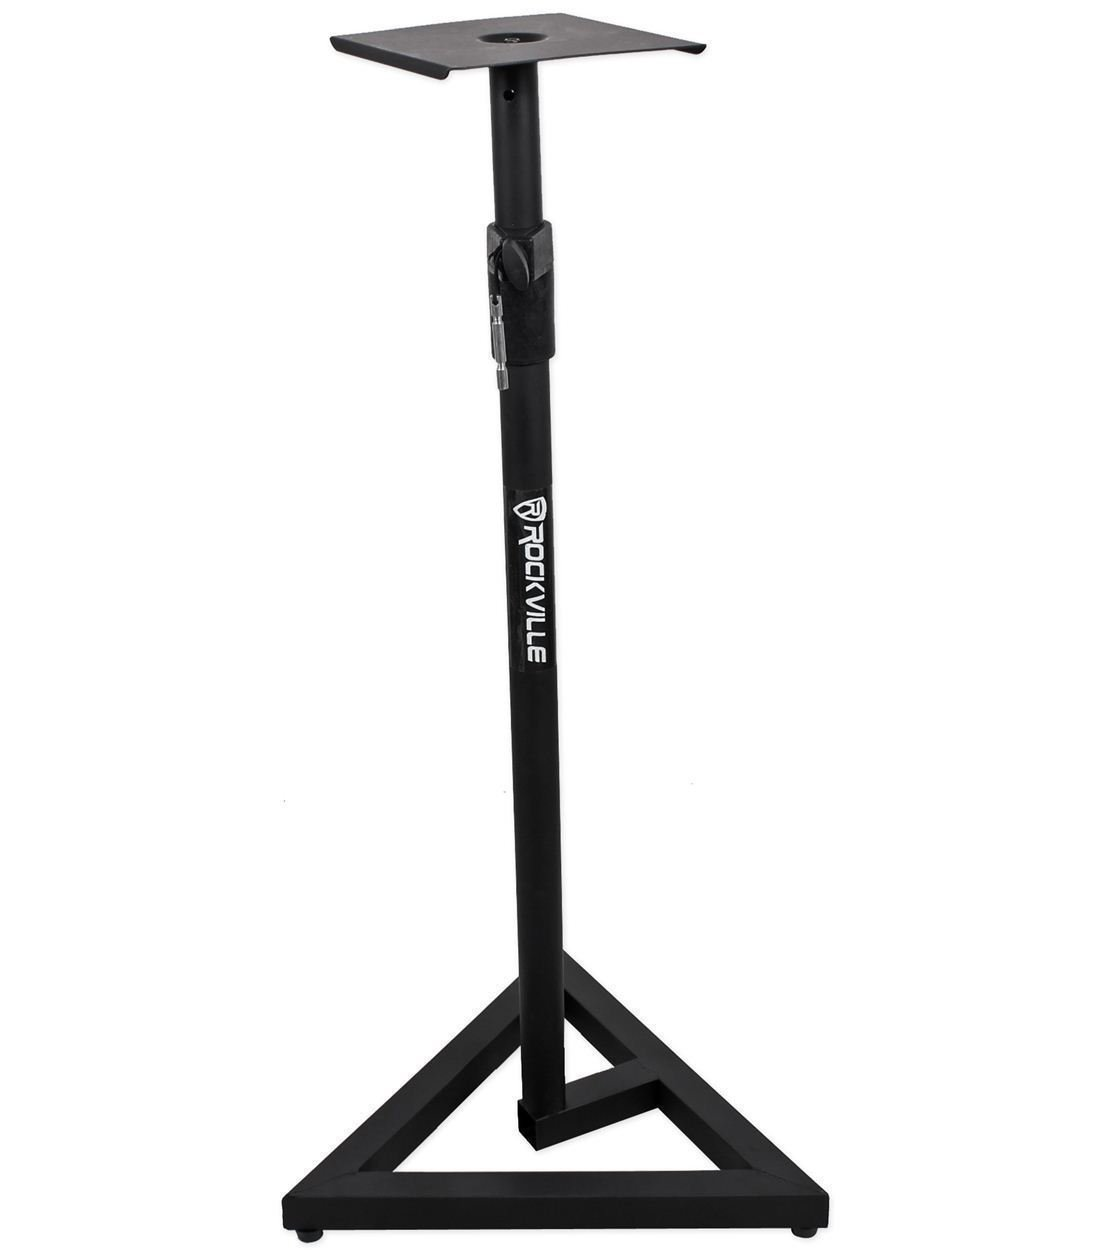 Rockville RVSM1 Pair of Near-Field Studio Monitor Stands w/Adjustable Height by Rockville (Image #2)